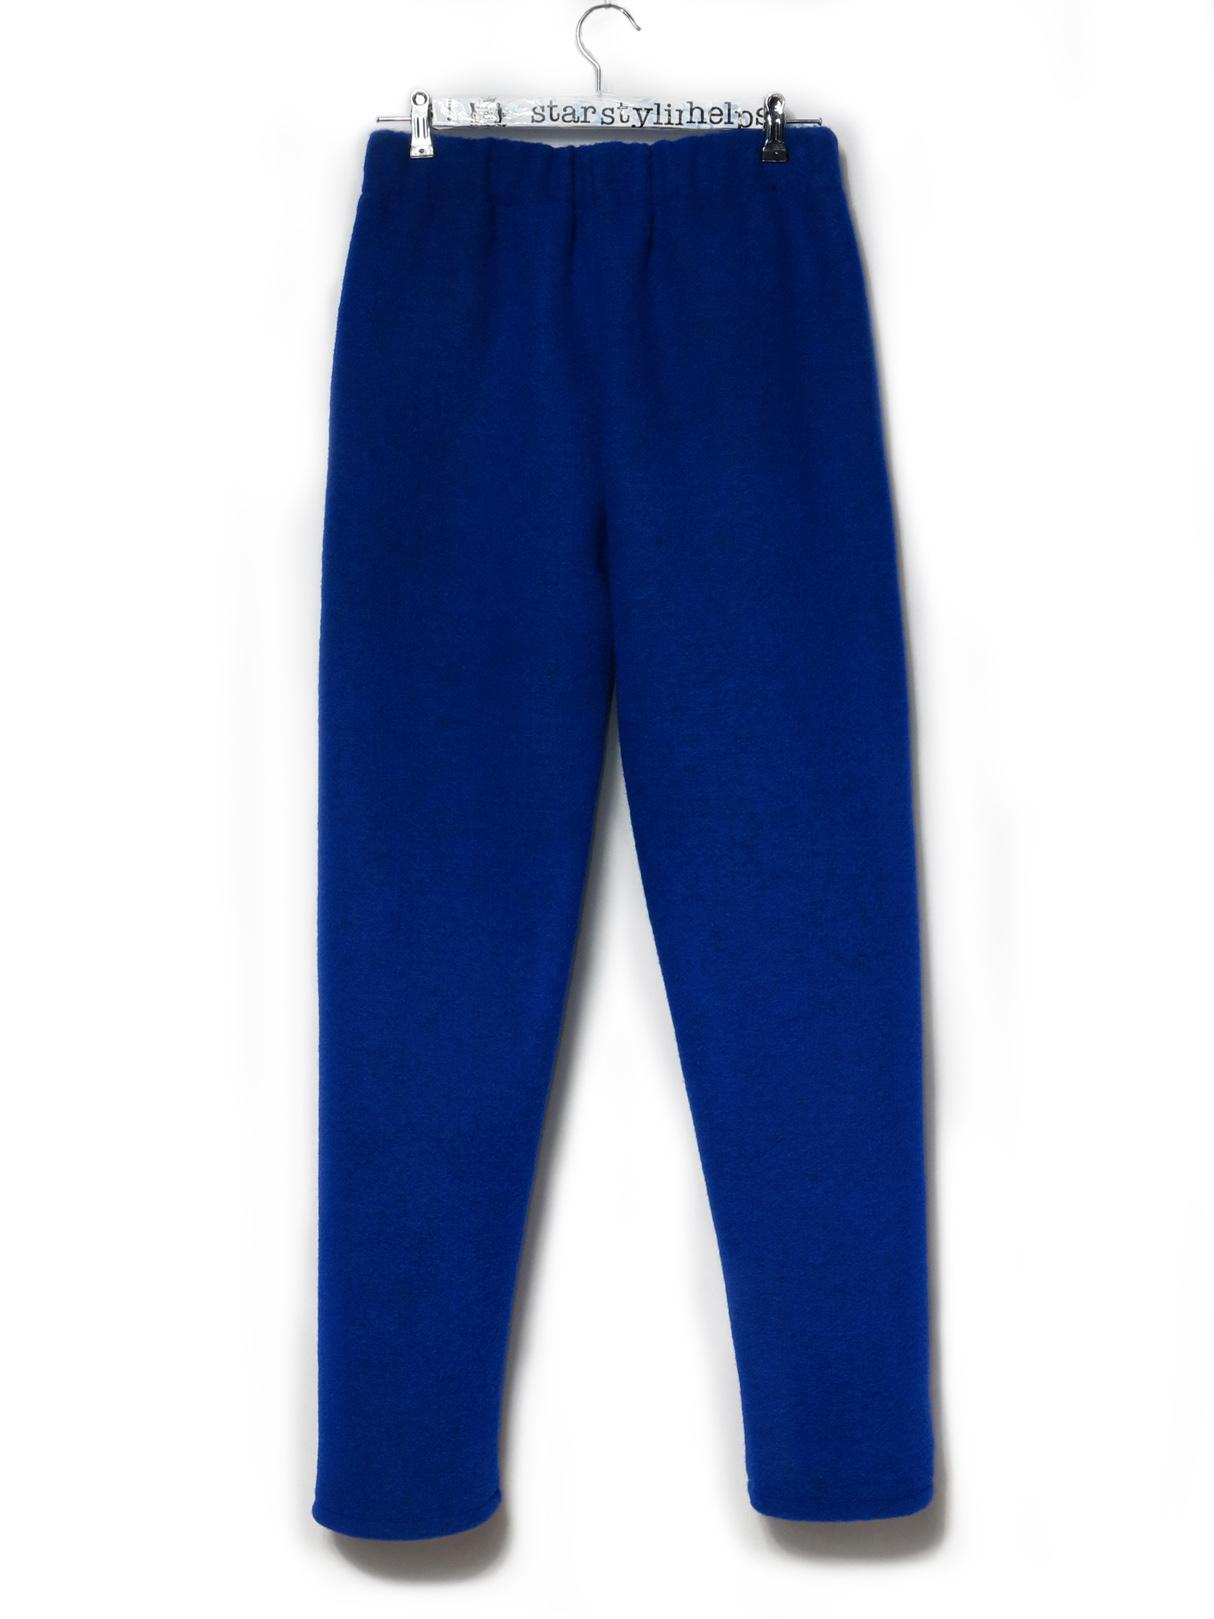 WOOL TROUSERS BLUE MONDAY - 0